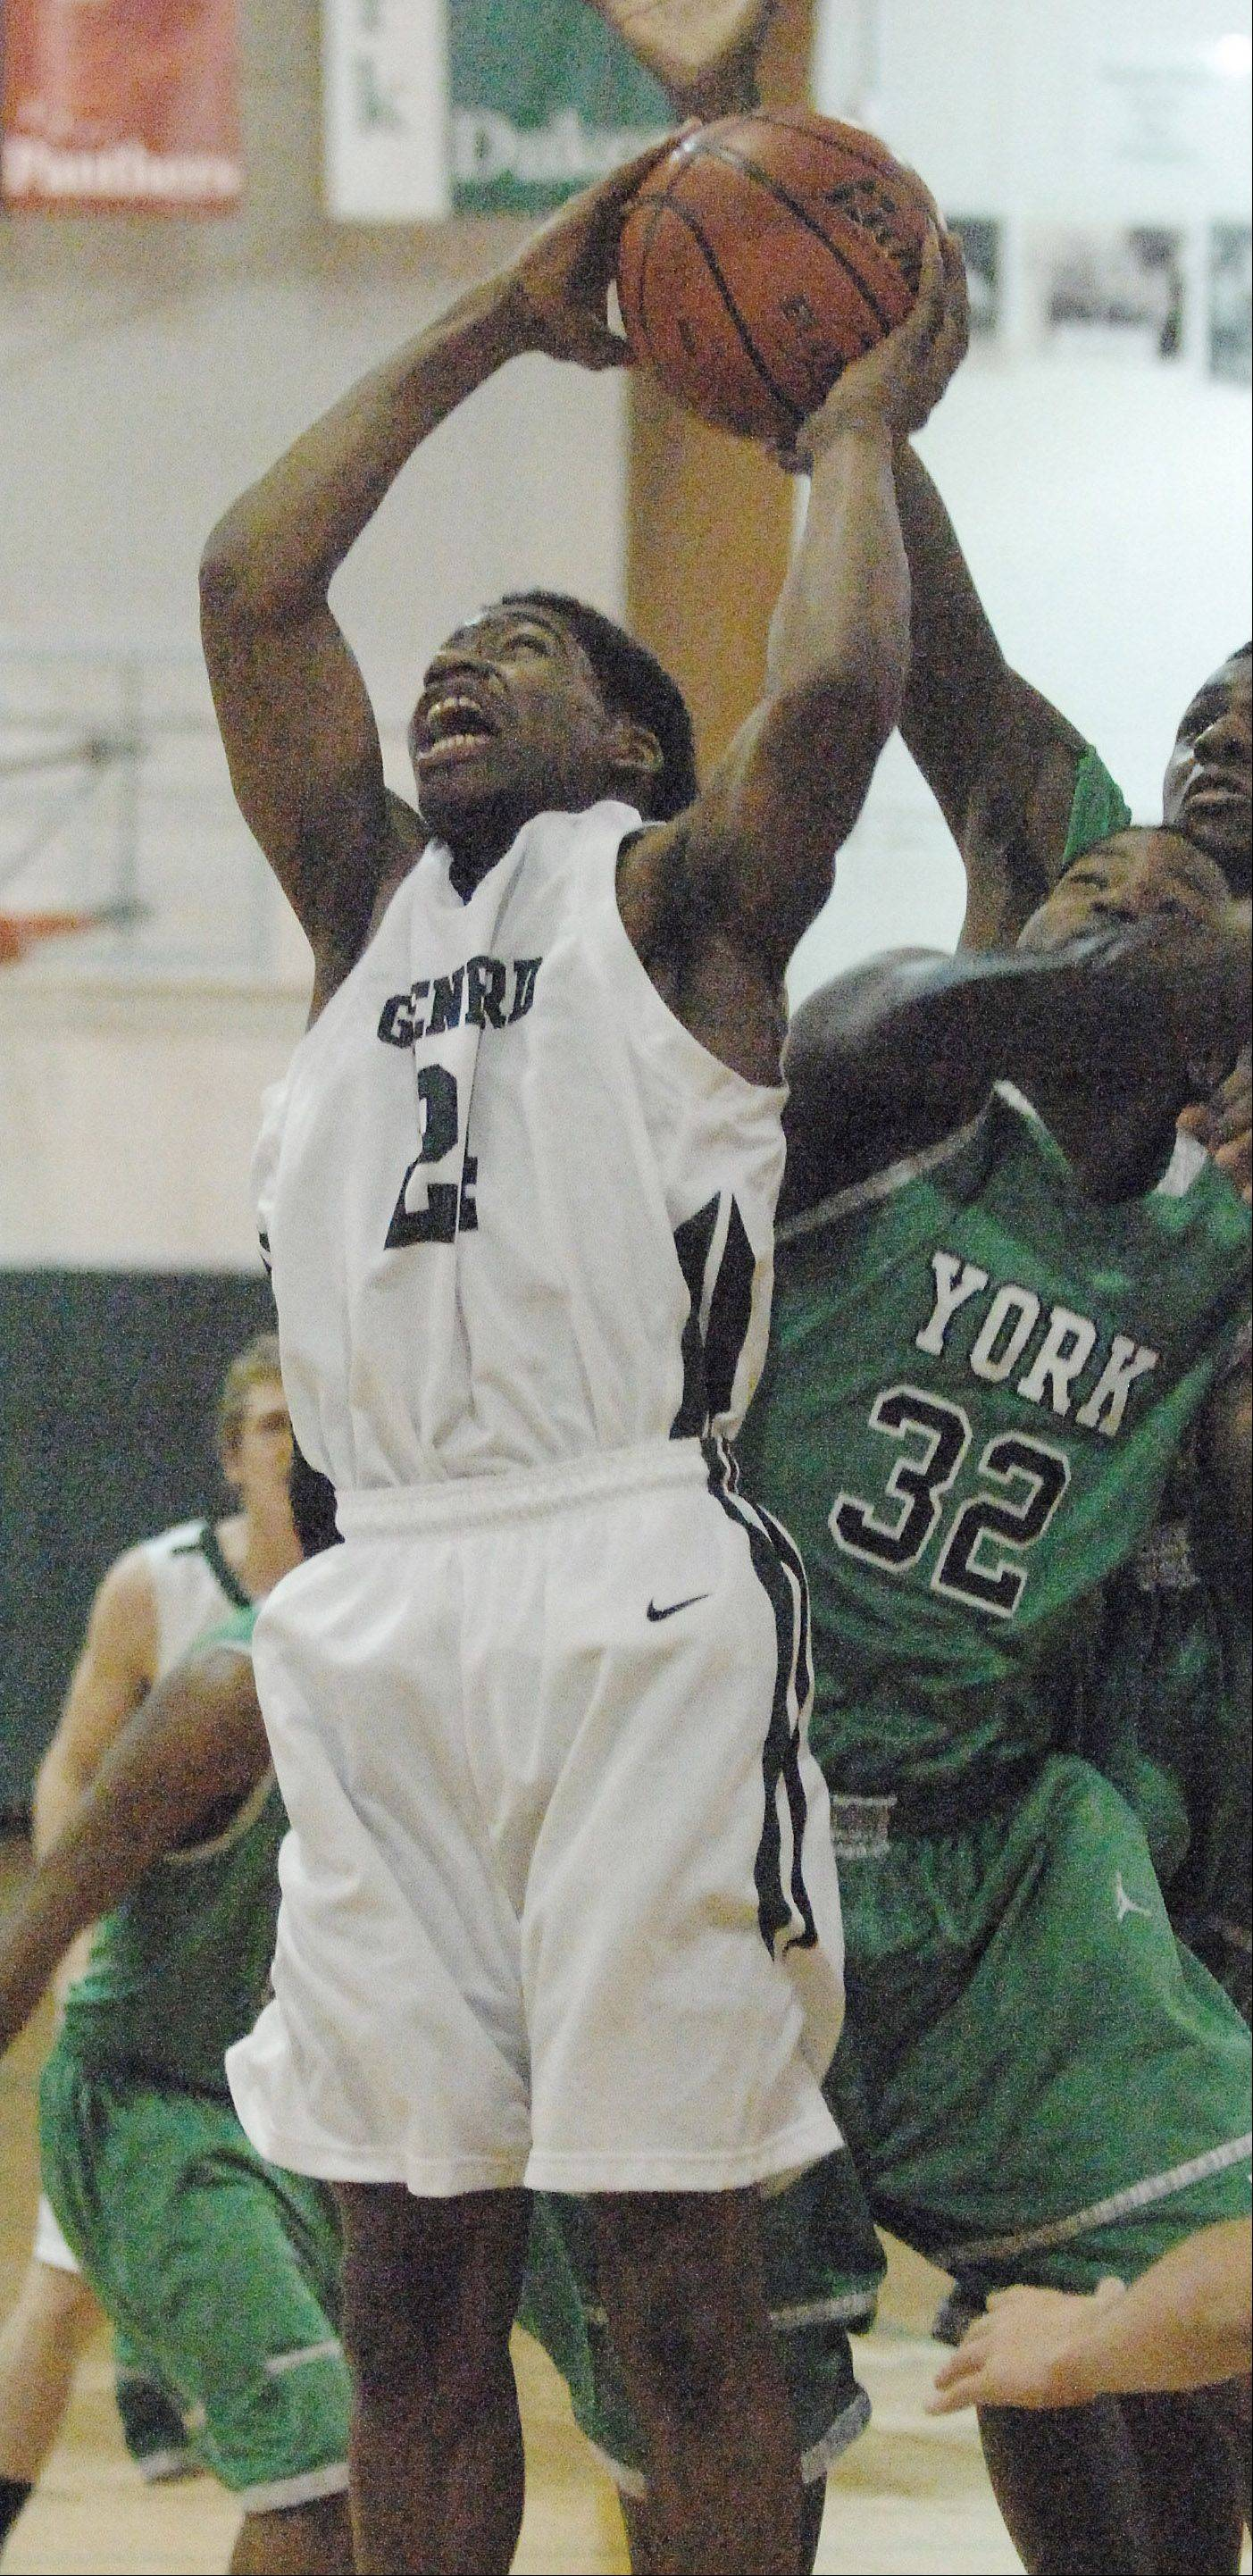 Keith Hayes of Glenbard West puts up a shot while Calvin Brown of York tries to knock the ball away during the York at Glenbard West boys basketball game Friday.